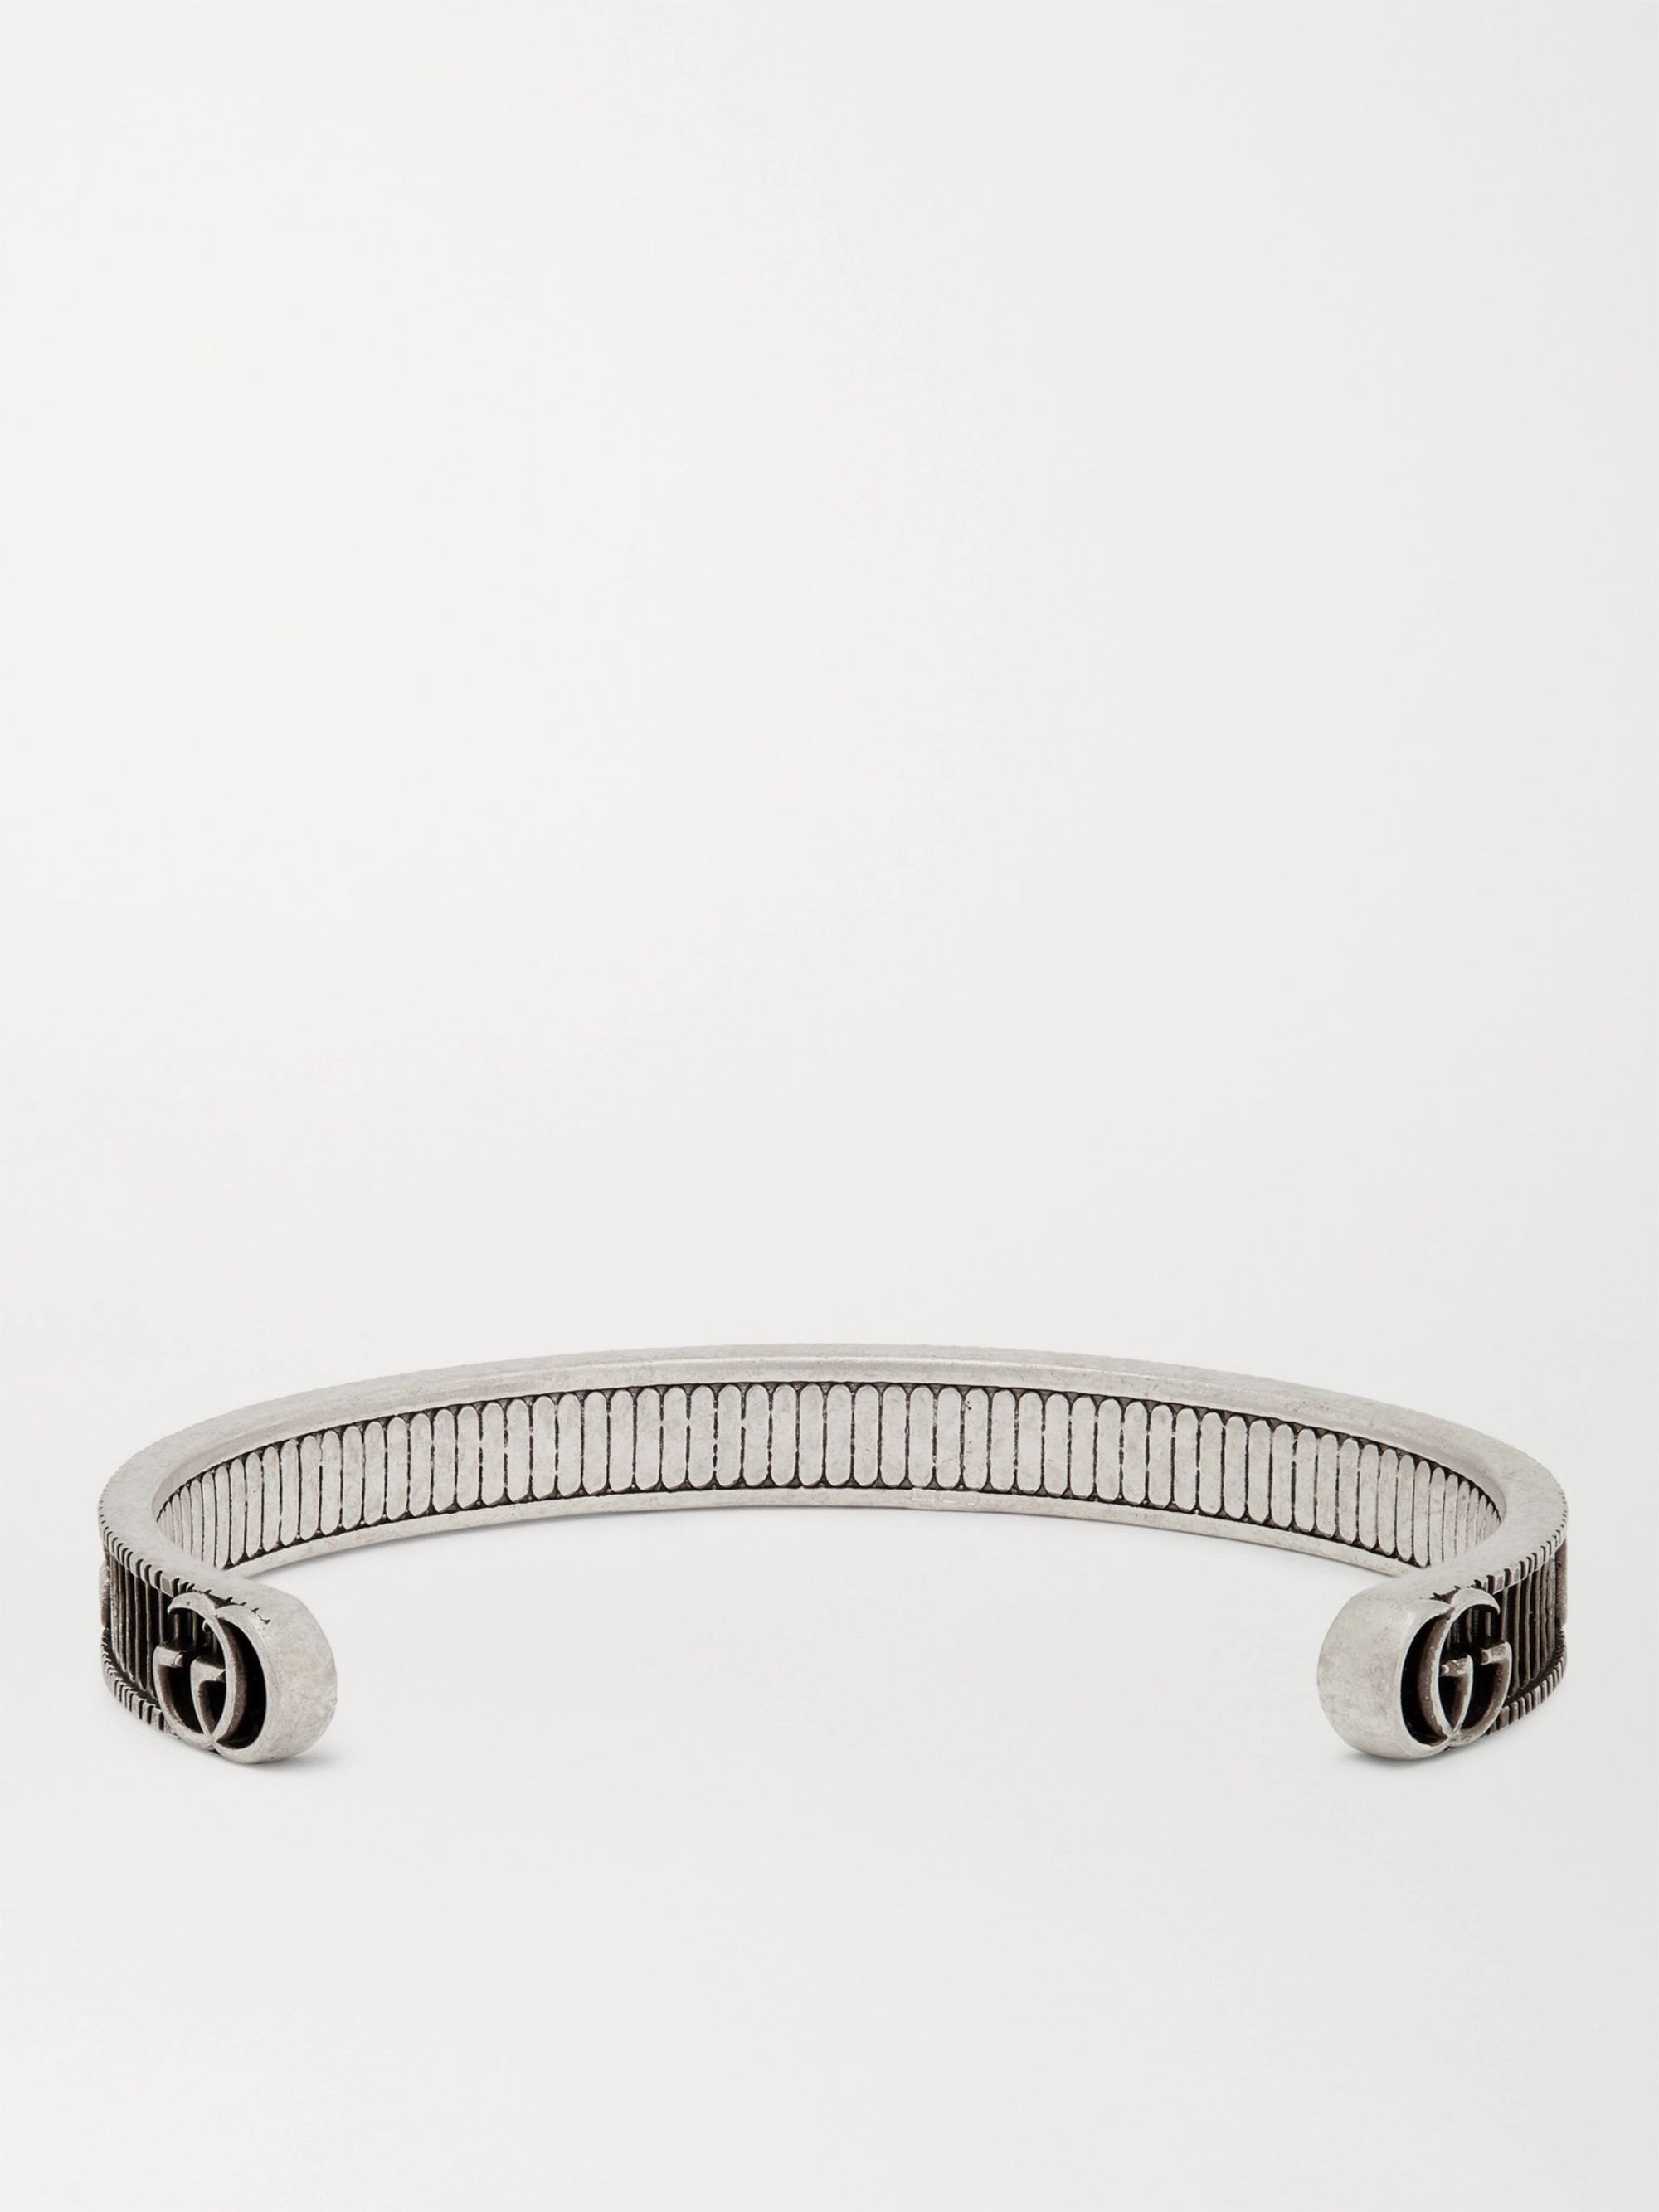 Gucci Engraved Burnished Sterling Silver Cuff